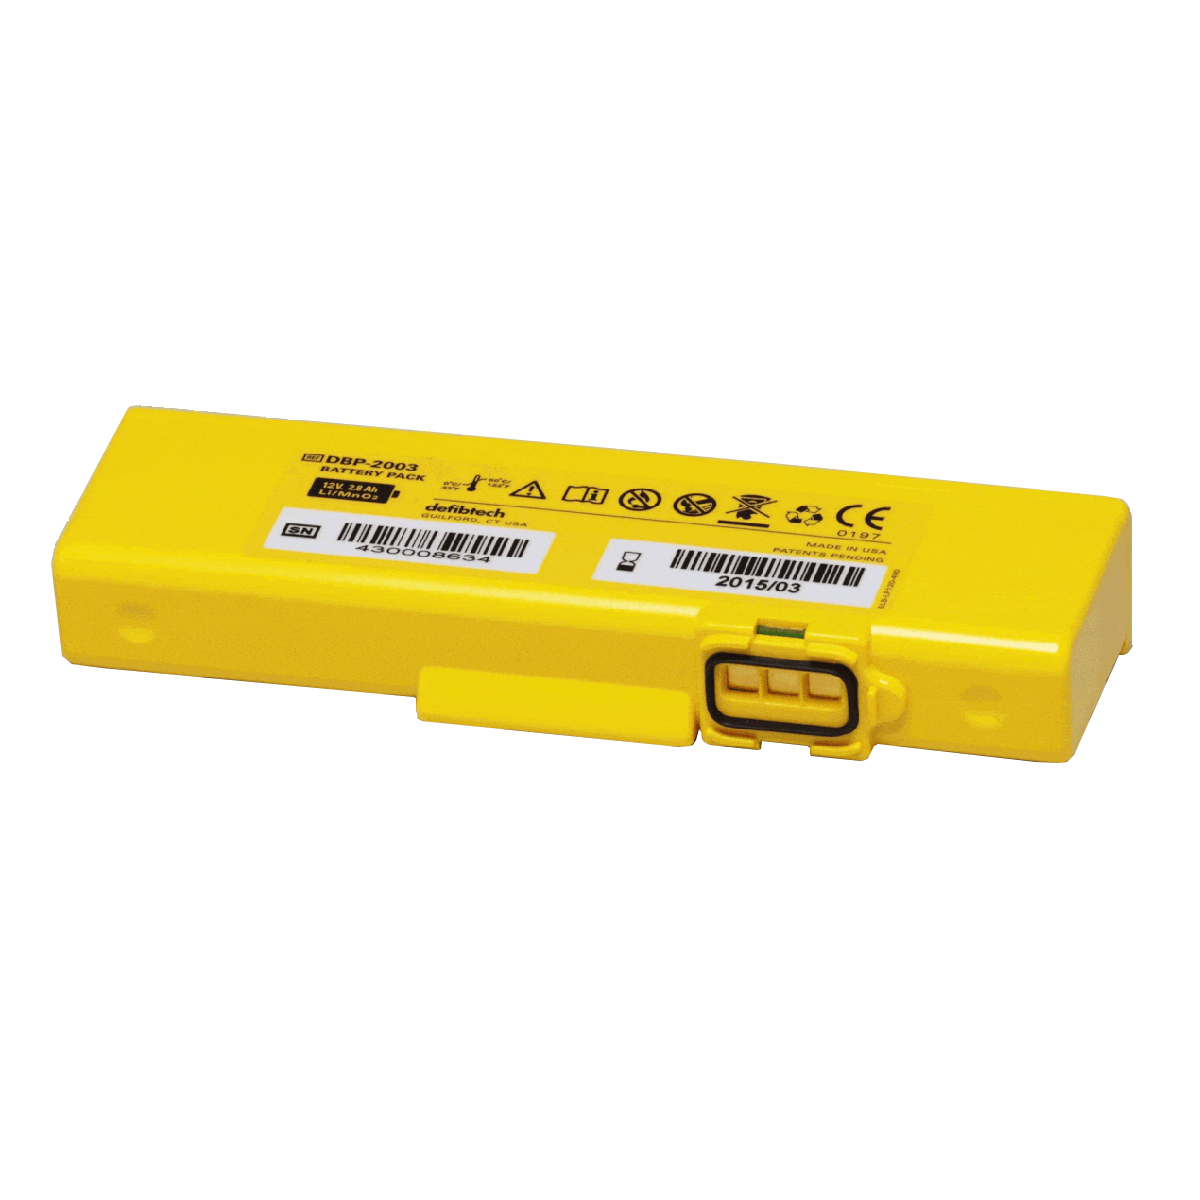 Defibtech Lifeline View Standard Capacity 4-year Battery Pack